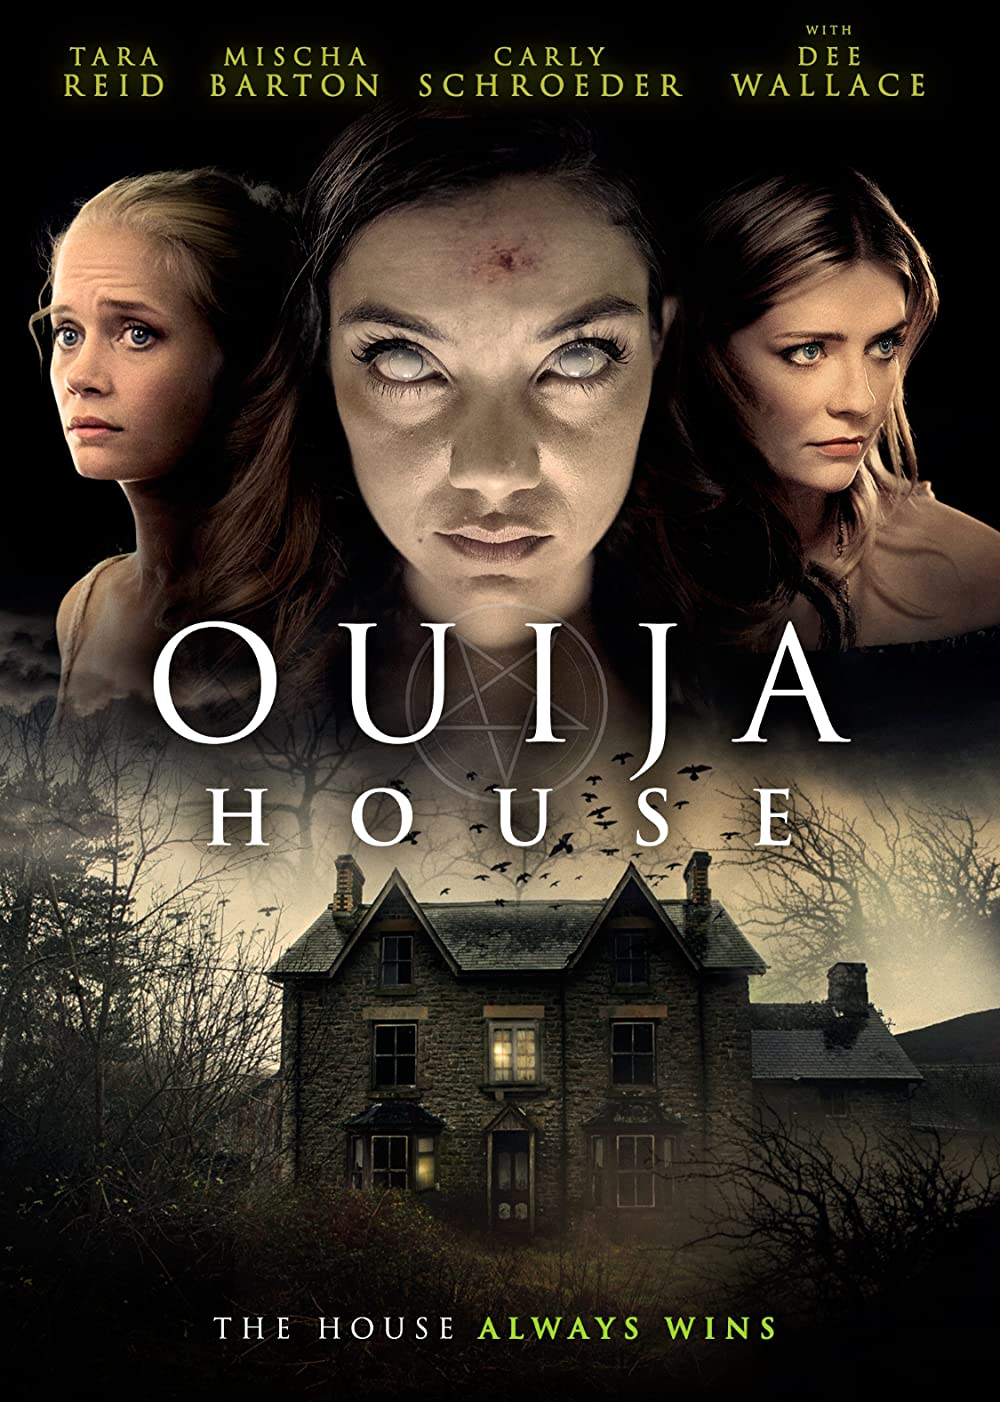 Ouija House 2018 Hindi Dual Audio 1080p BluRay ESubs 1.65GB Download